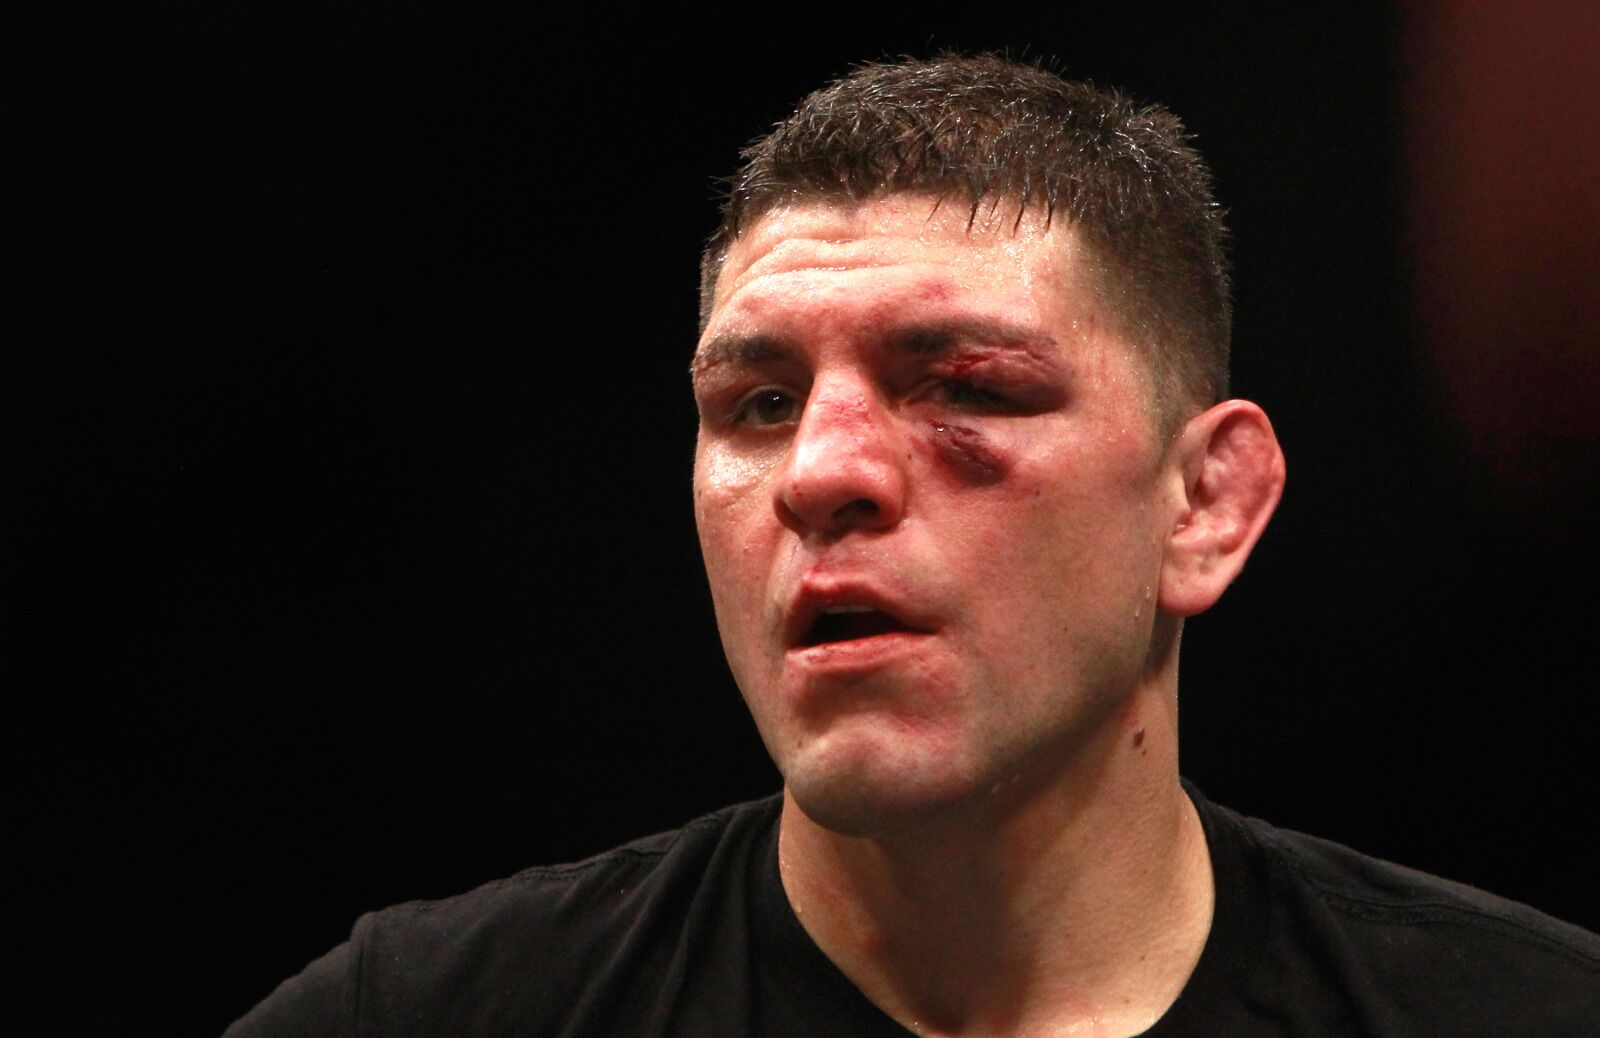 No one should want to see the Nick Diaz vs. Jorge Masvidal fight